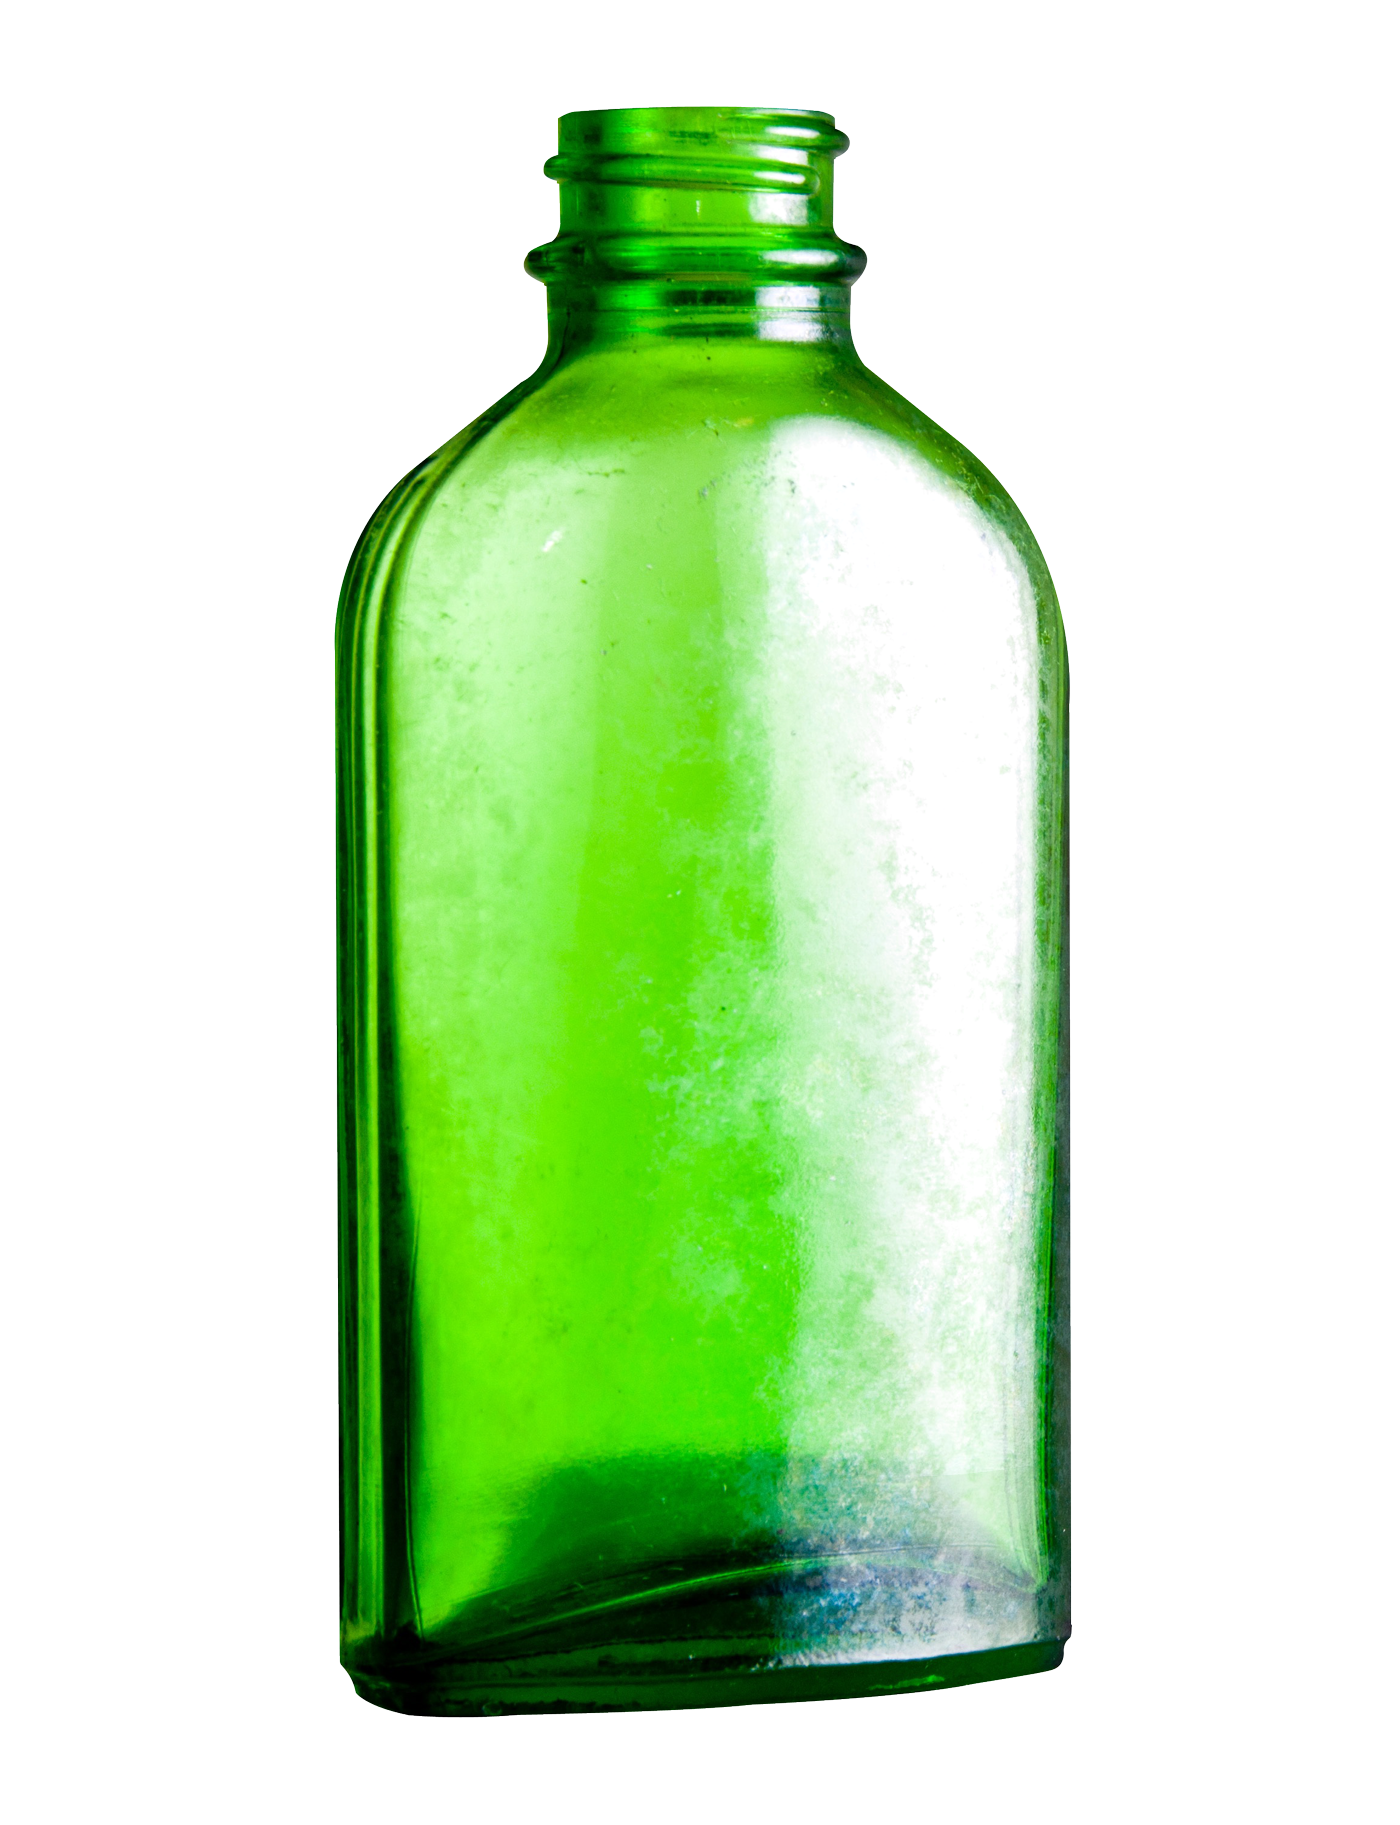 Soda bottle png